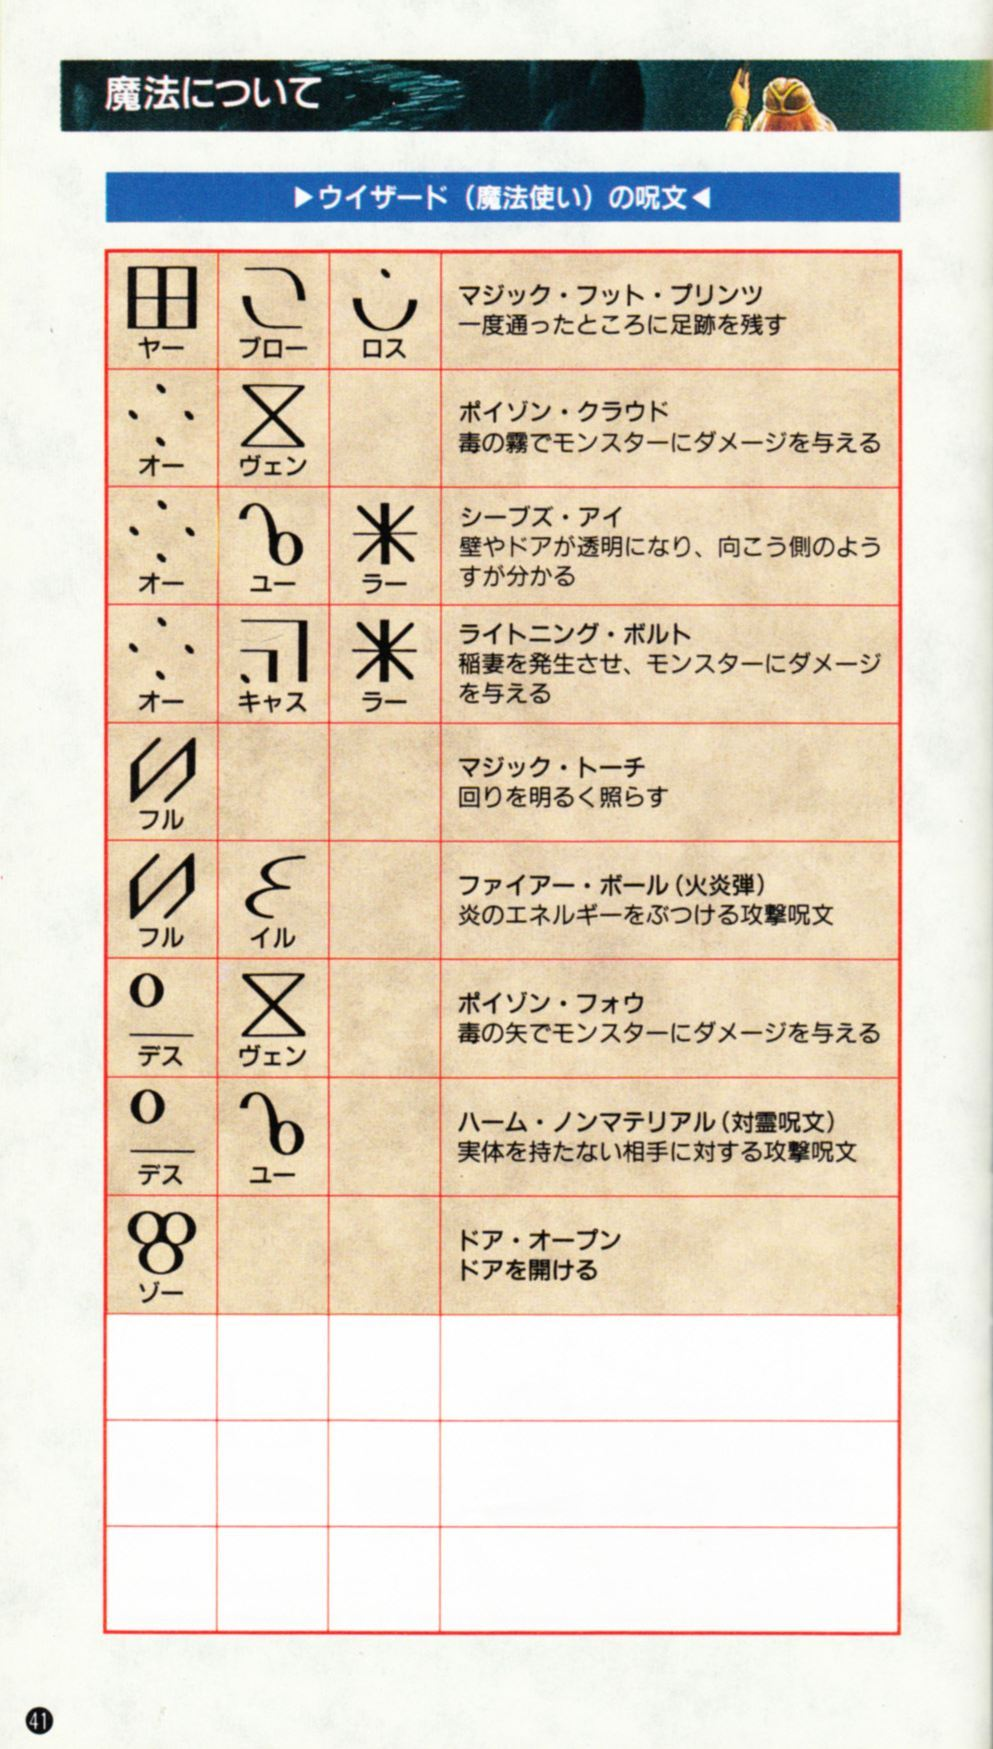 Game - Dungeon Master - JP - Super Famicom - Manual - Page 044 - Scan